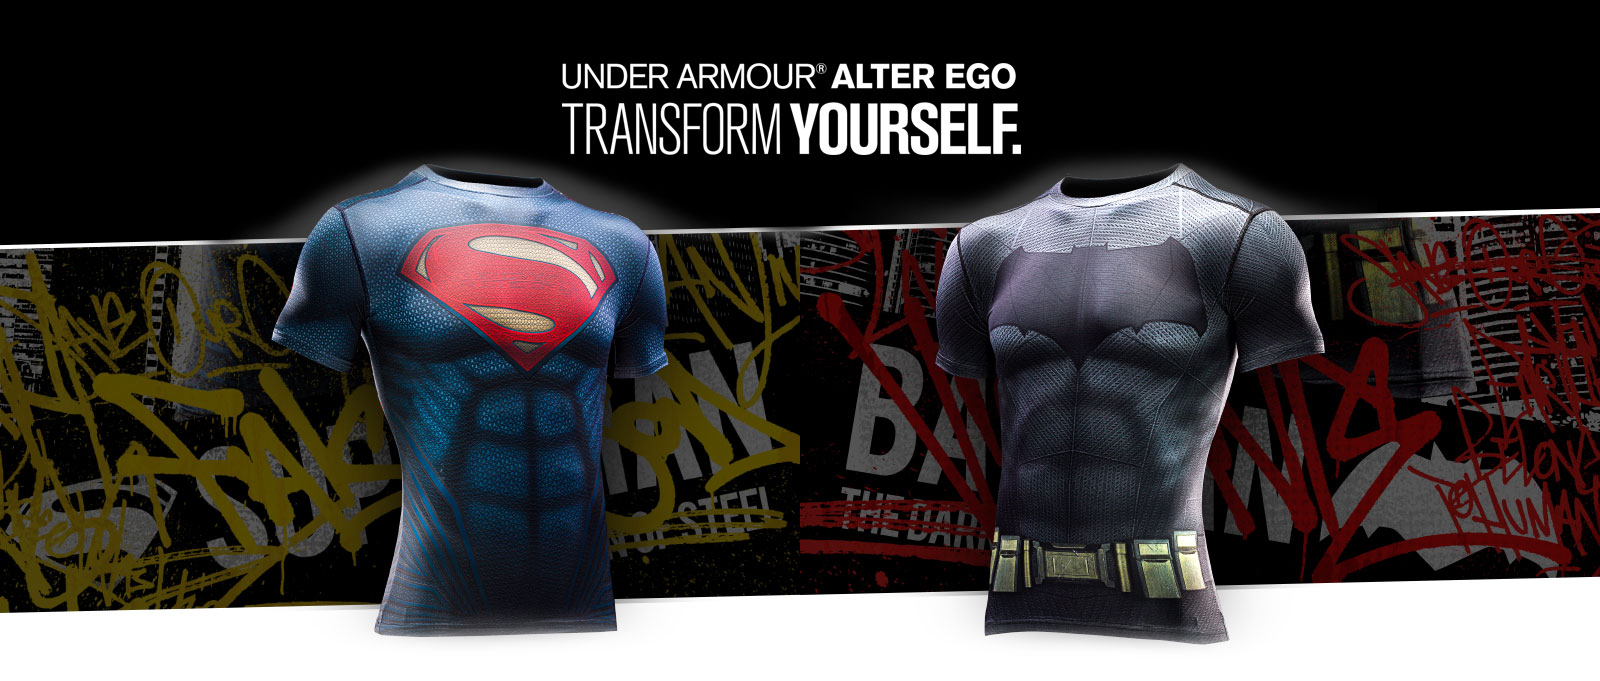 Under Armour Alter ego